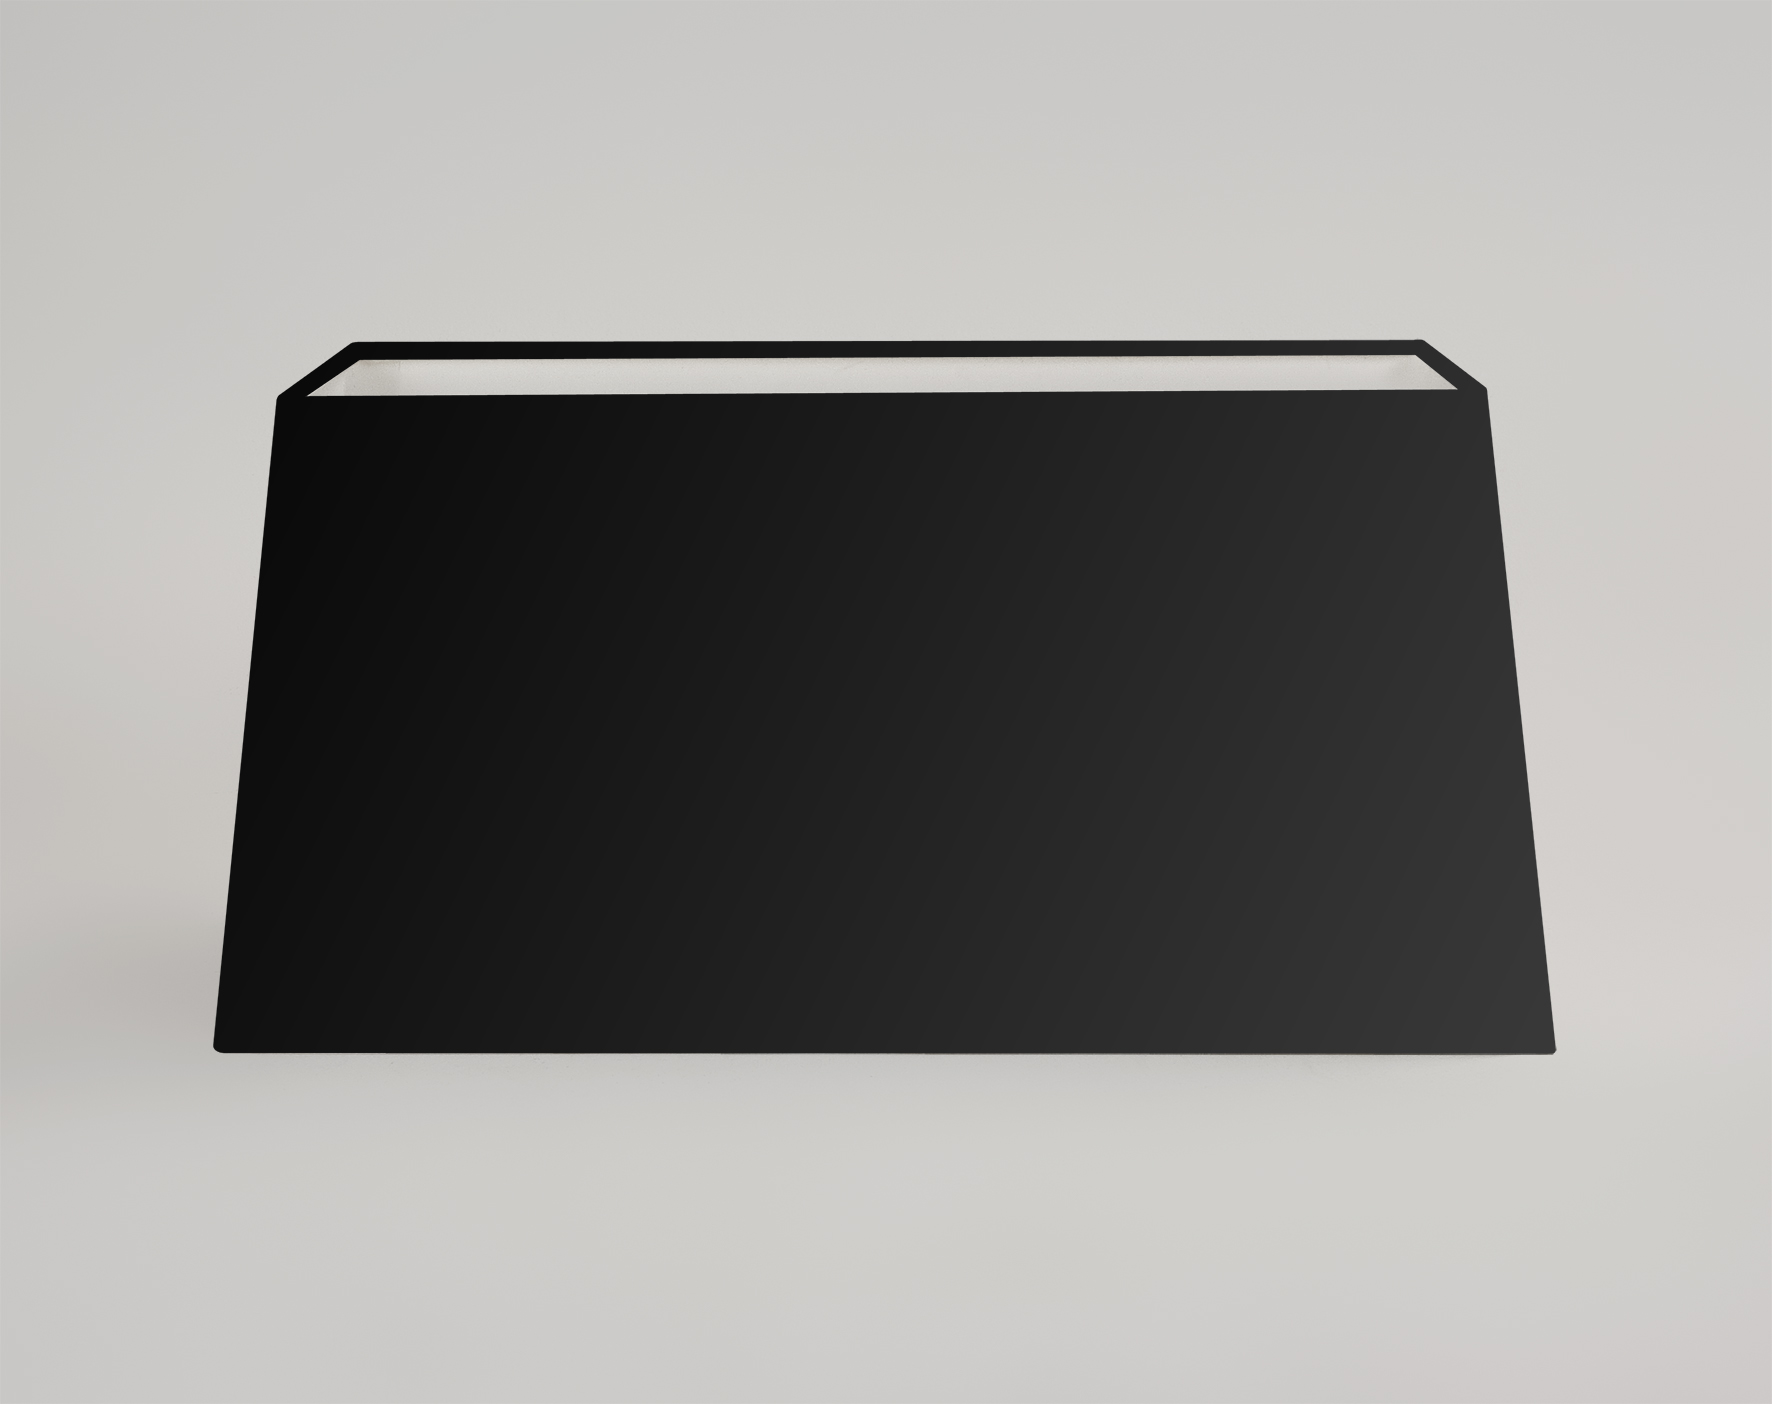 Rectangular Lamp Shades For Wall Lights : Astro Park Lane 4112 tapered rectangular lampshade for table wall light black eBay